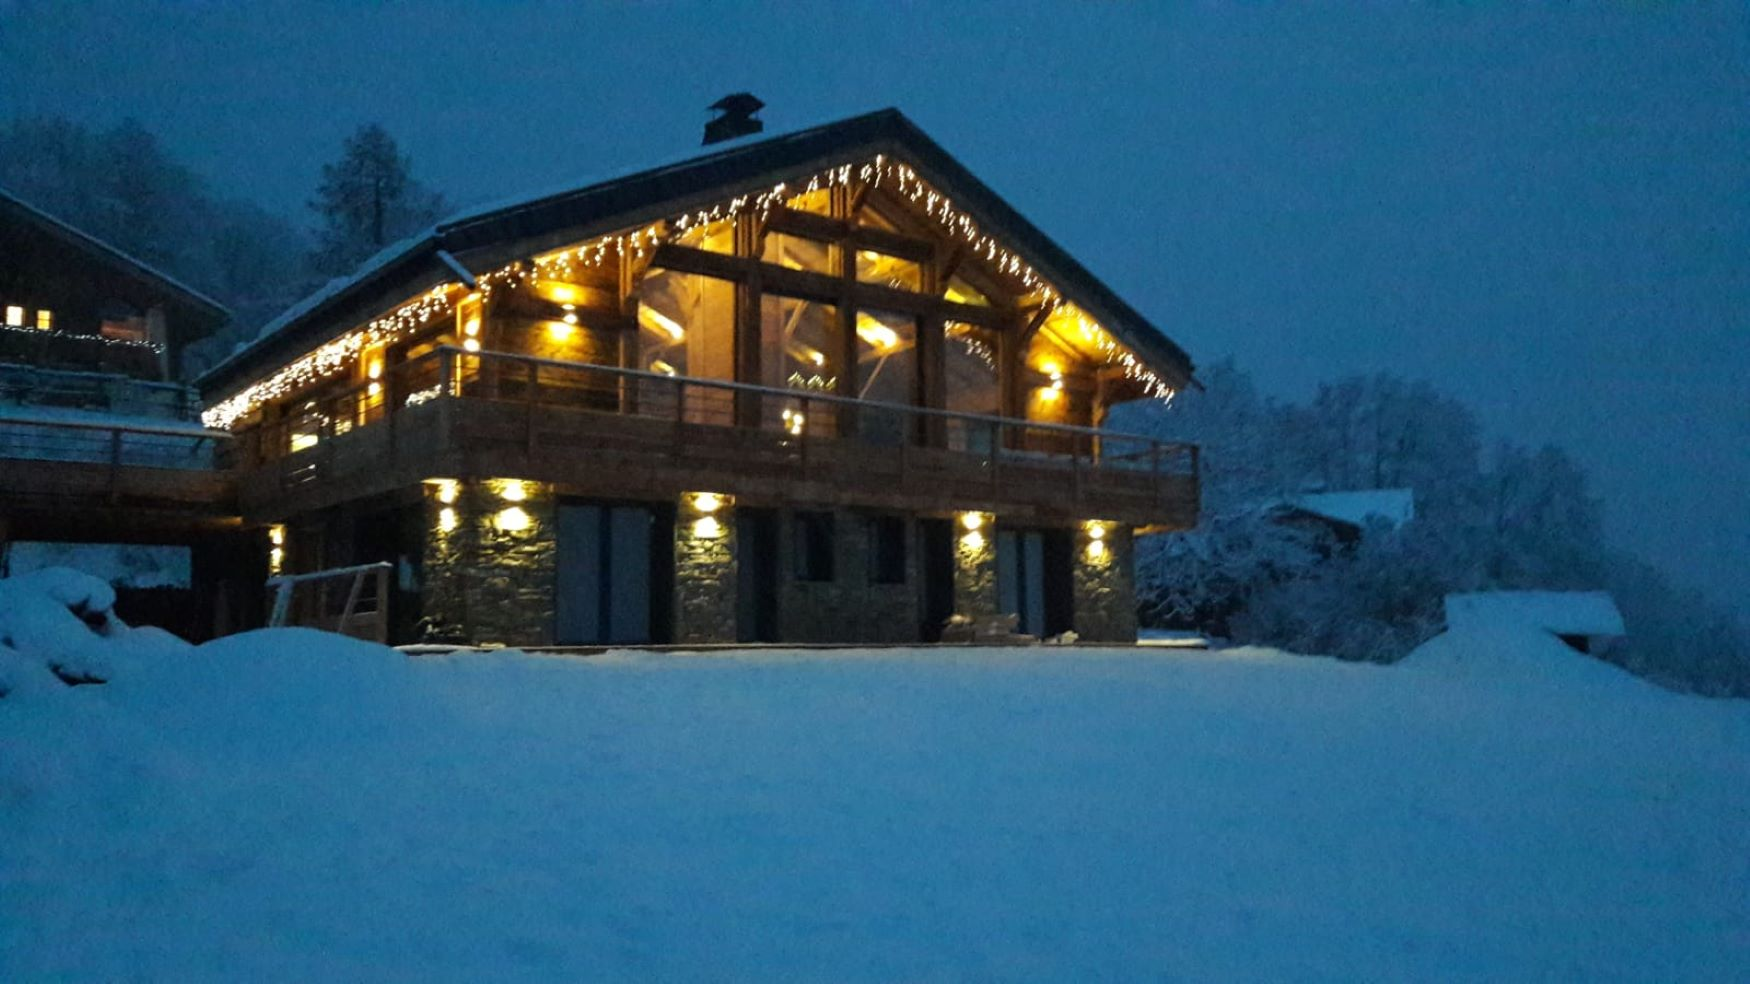 Gallery : Chalet at night